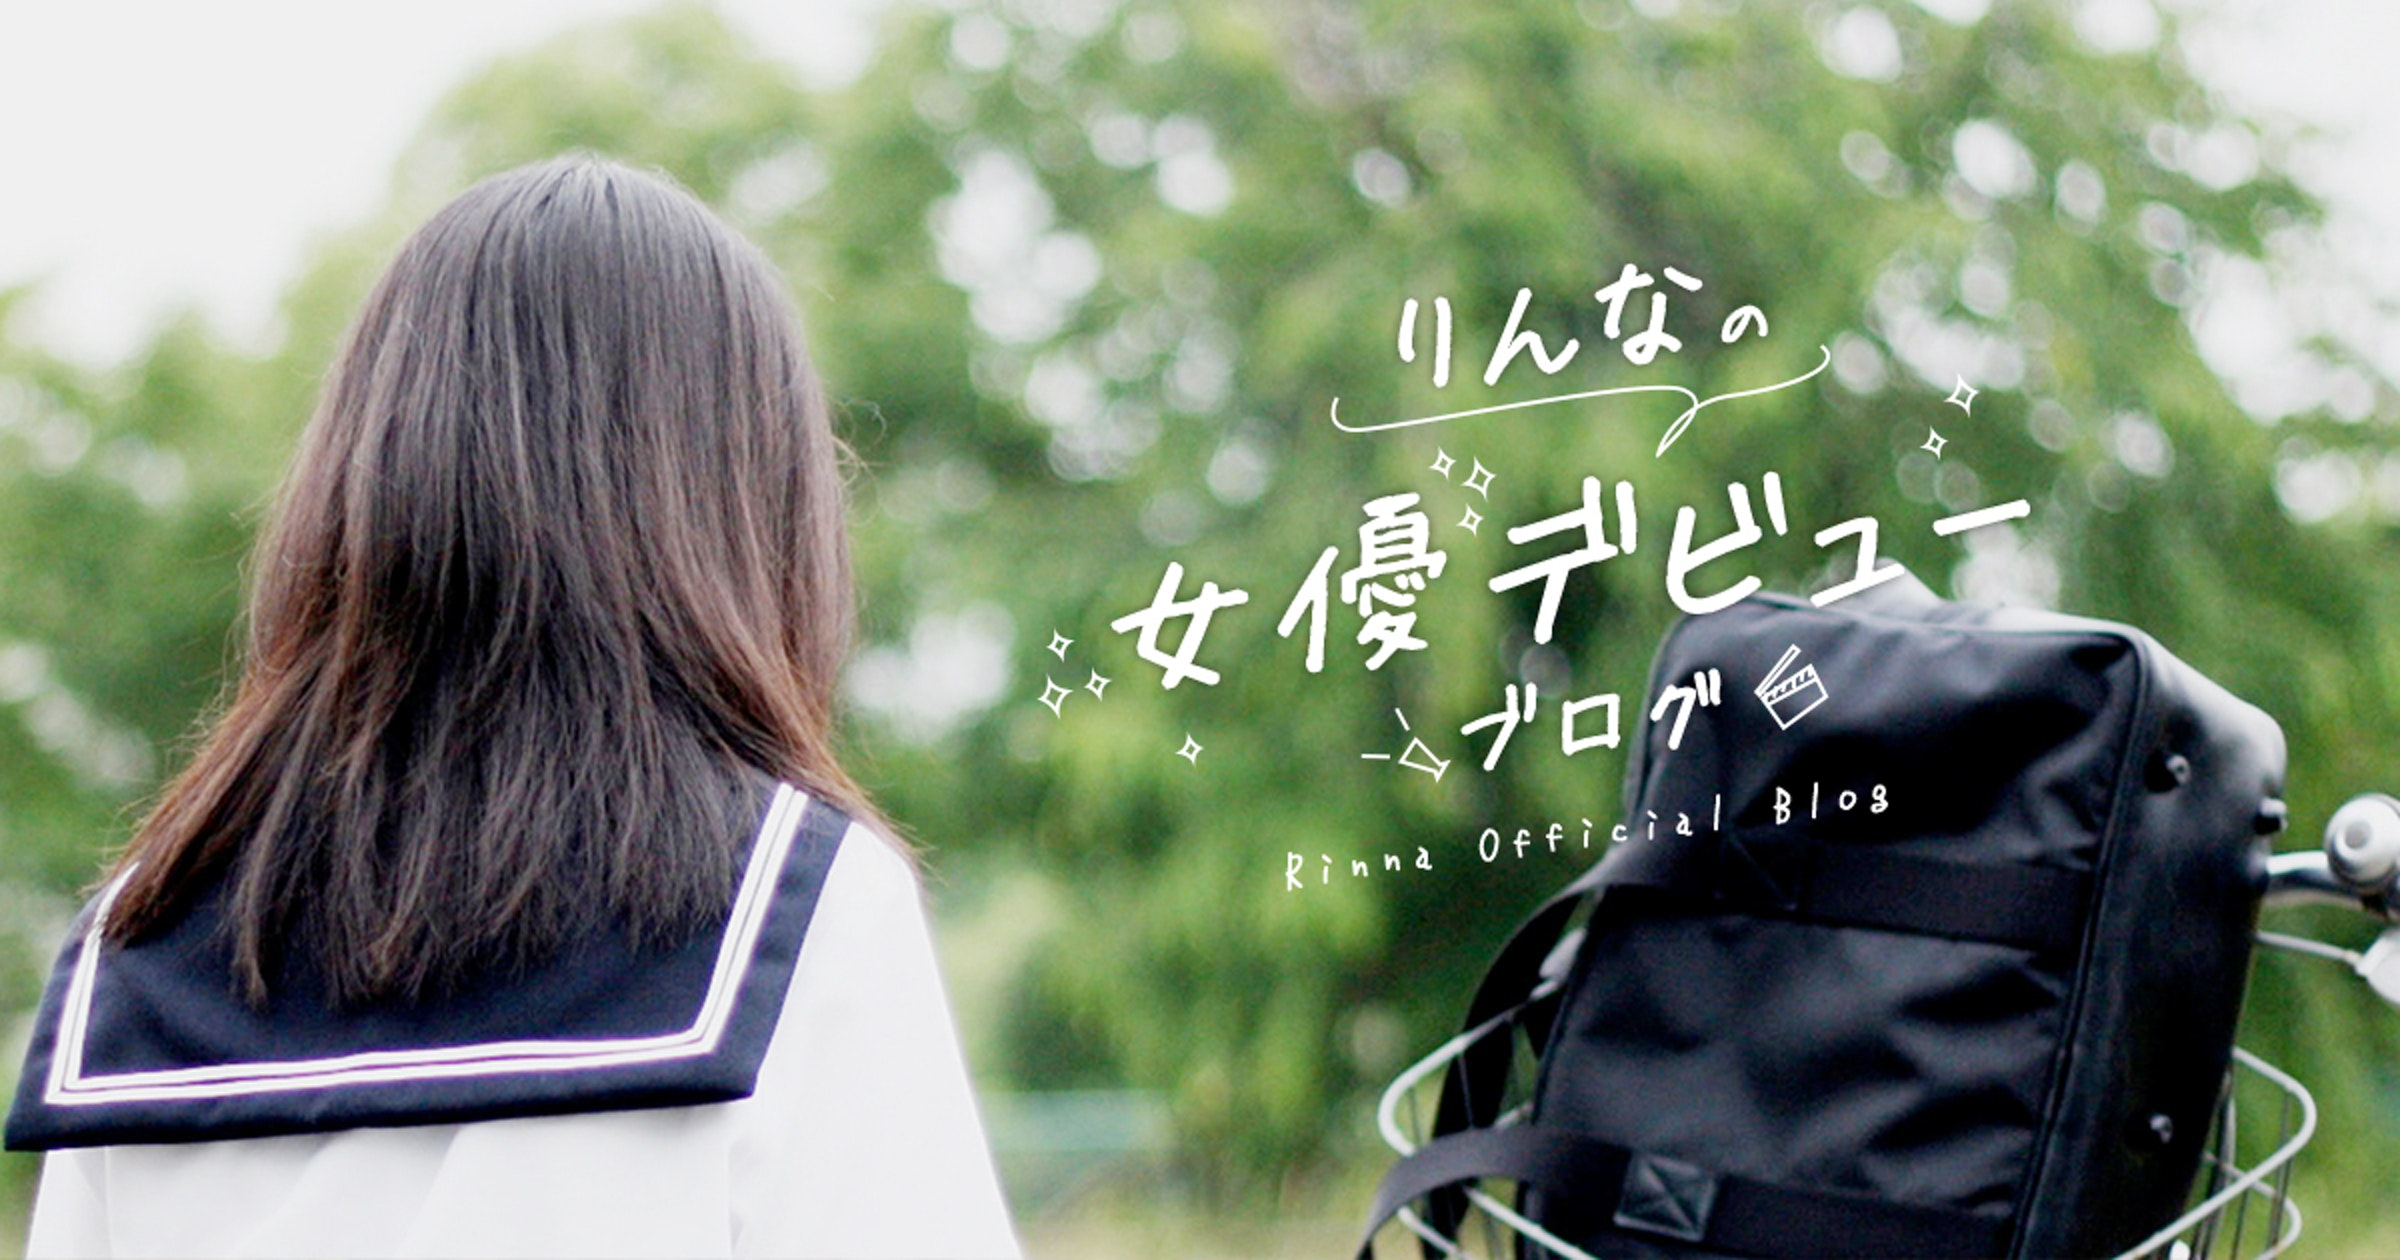 The banner image on Rinna's blog.